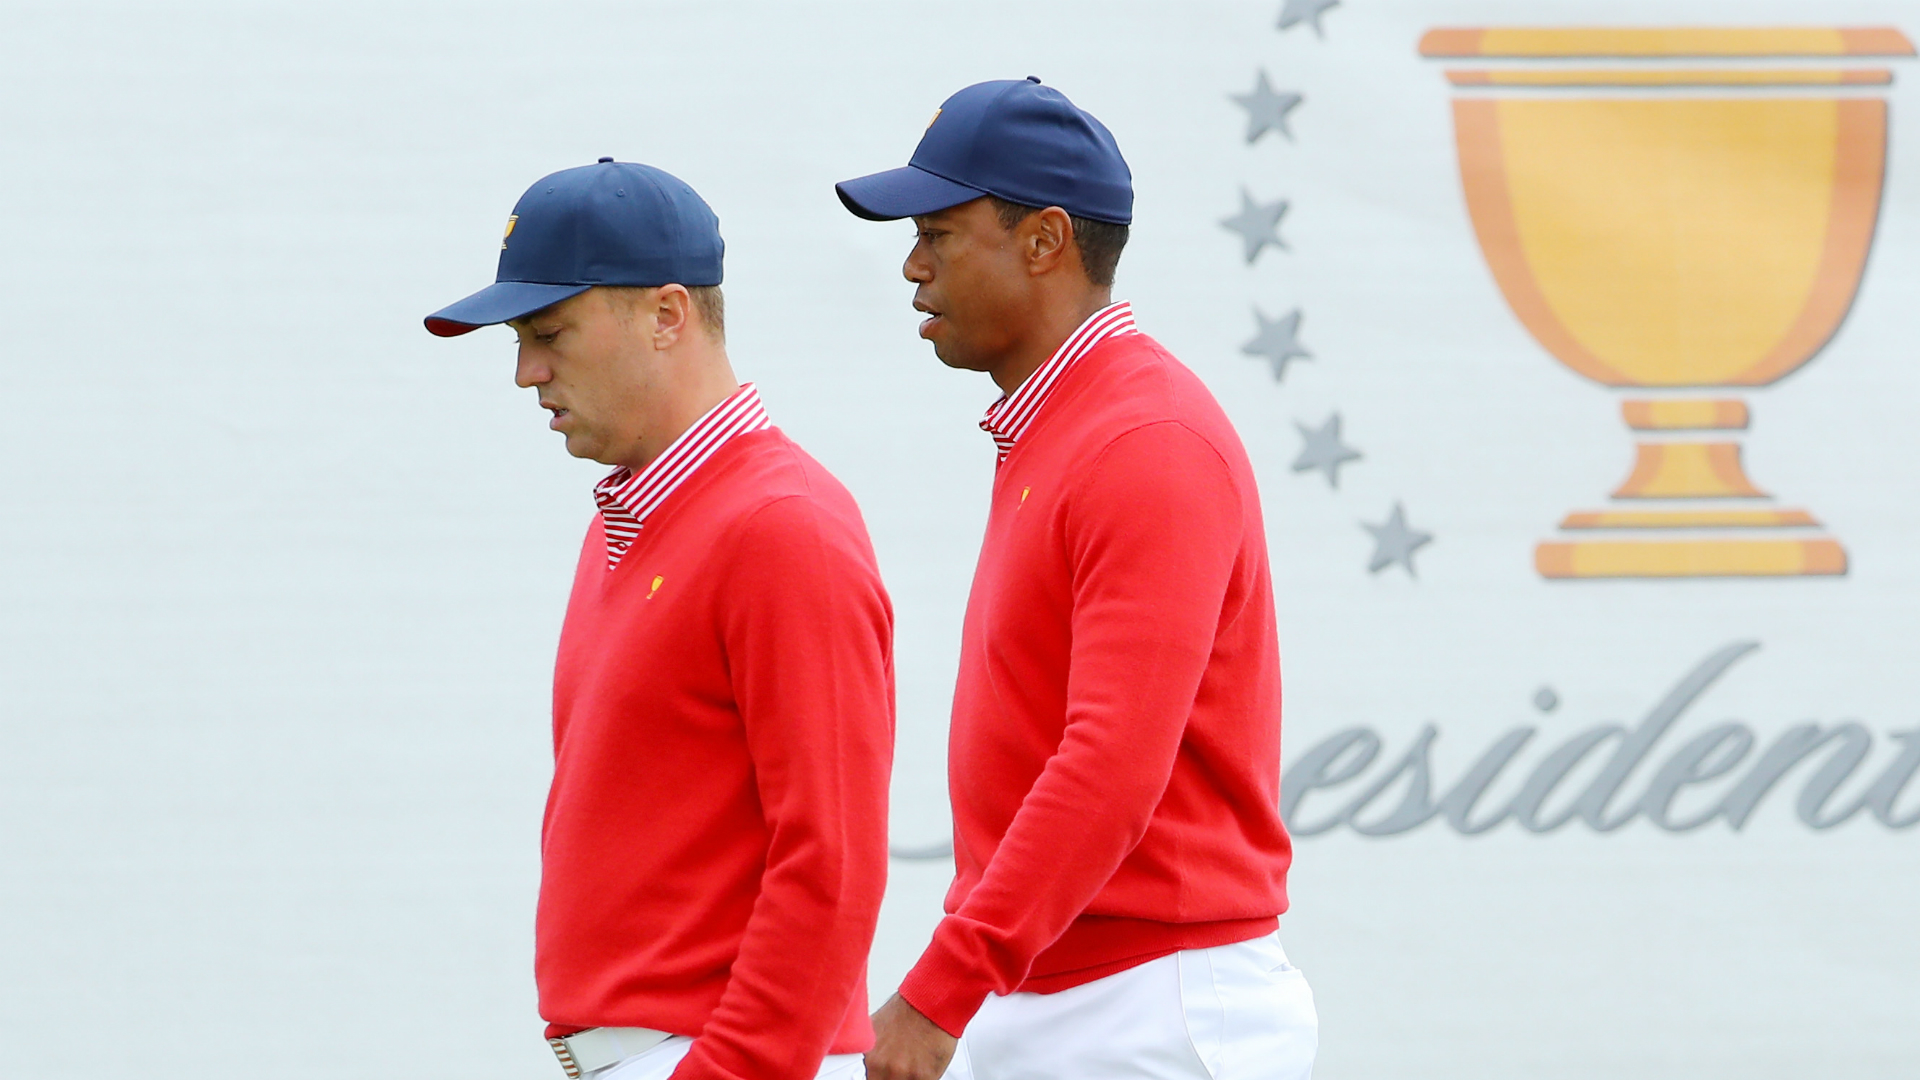 Presidents Cup 2019: Tiger Woods' USA with work to do in foursomes